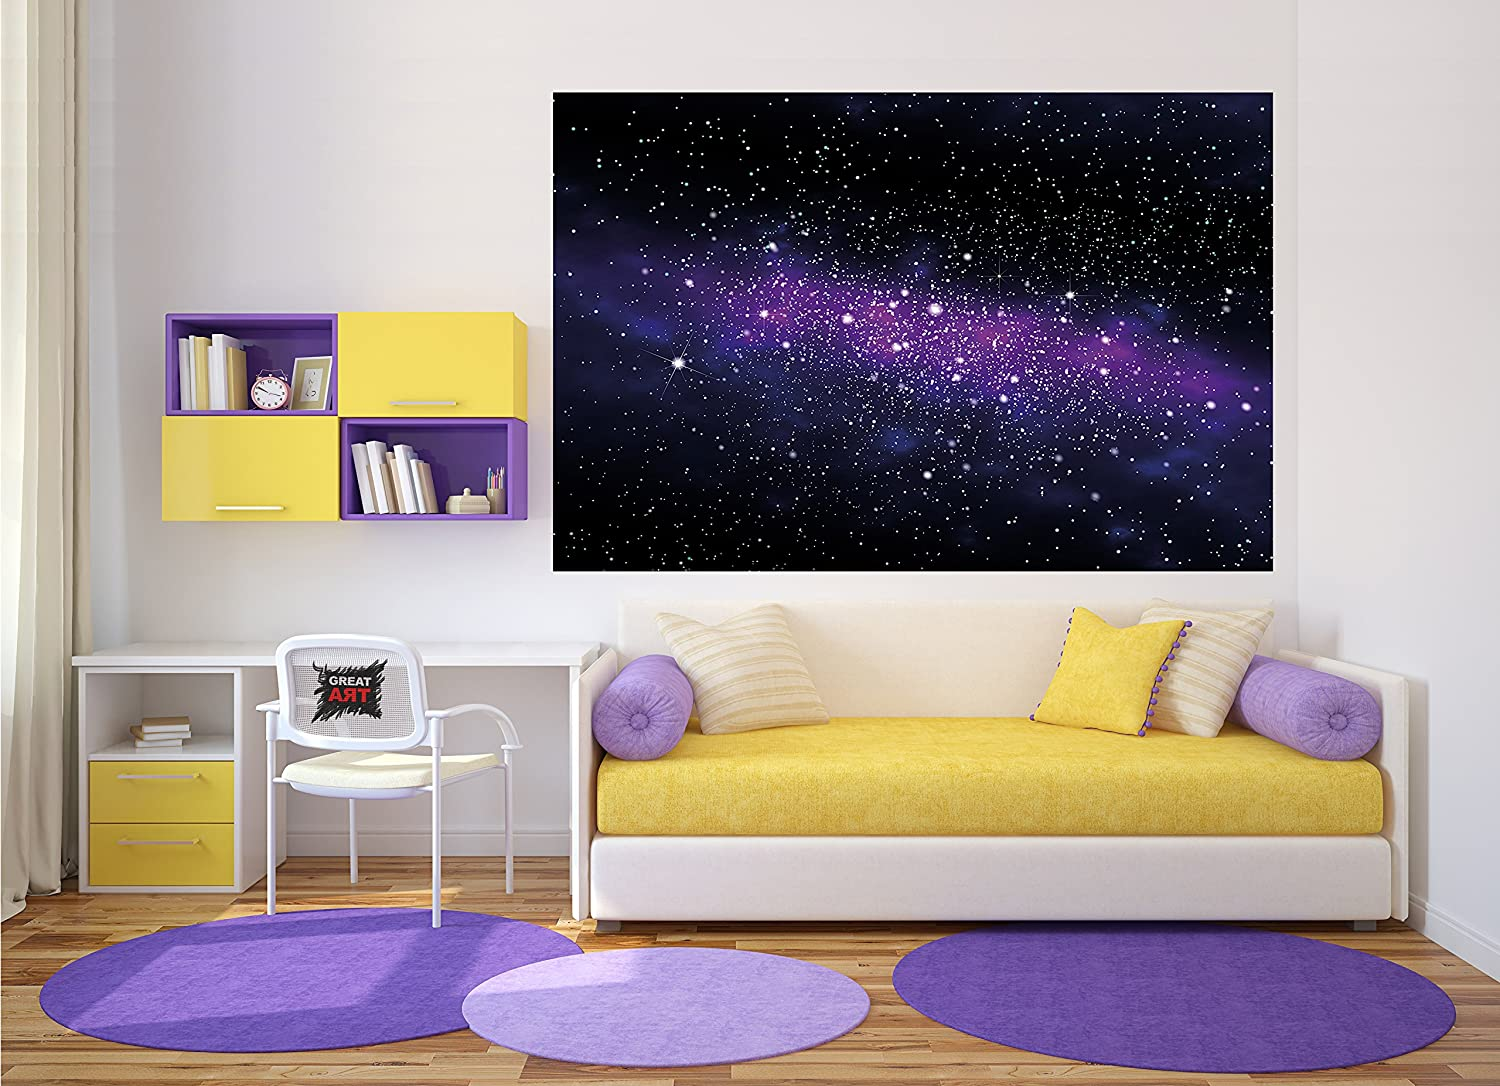 amazon com wallpaper stars wall picture decoration childrens room amazon com wallpaper stars wall picture decoration childrens room outer space sky galaxy universe cosmos starry sky milky way super nova poster wall decor